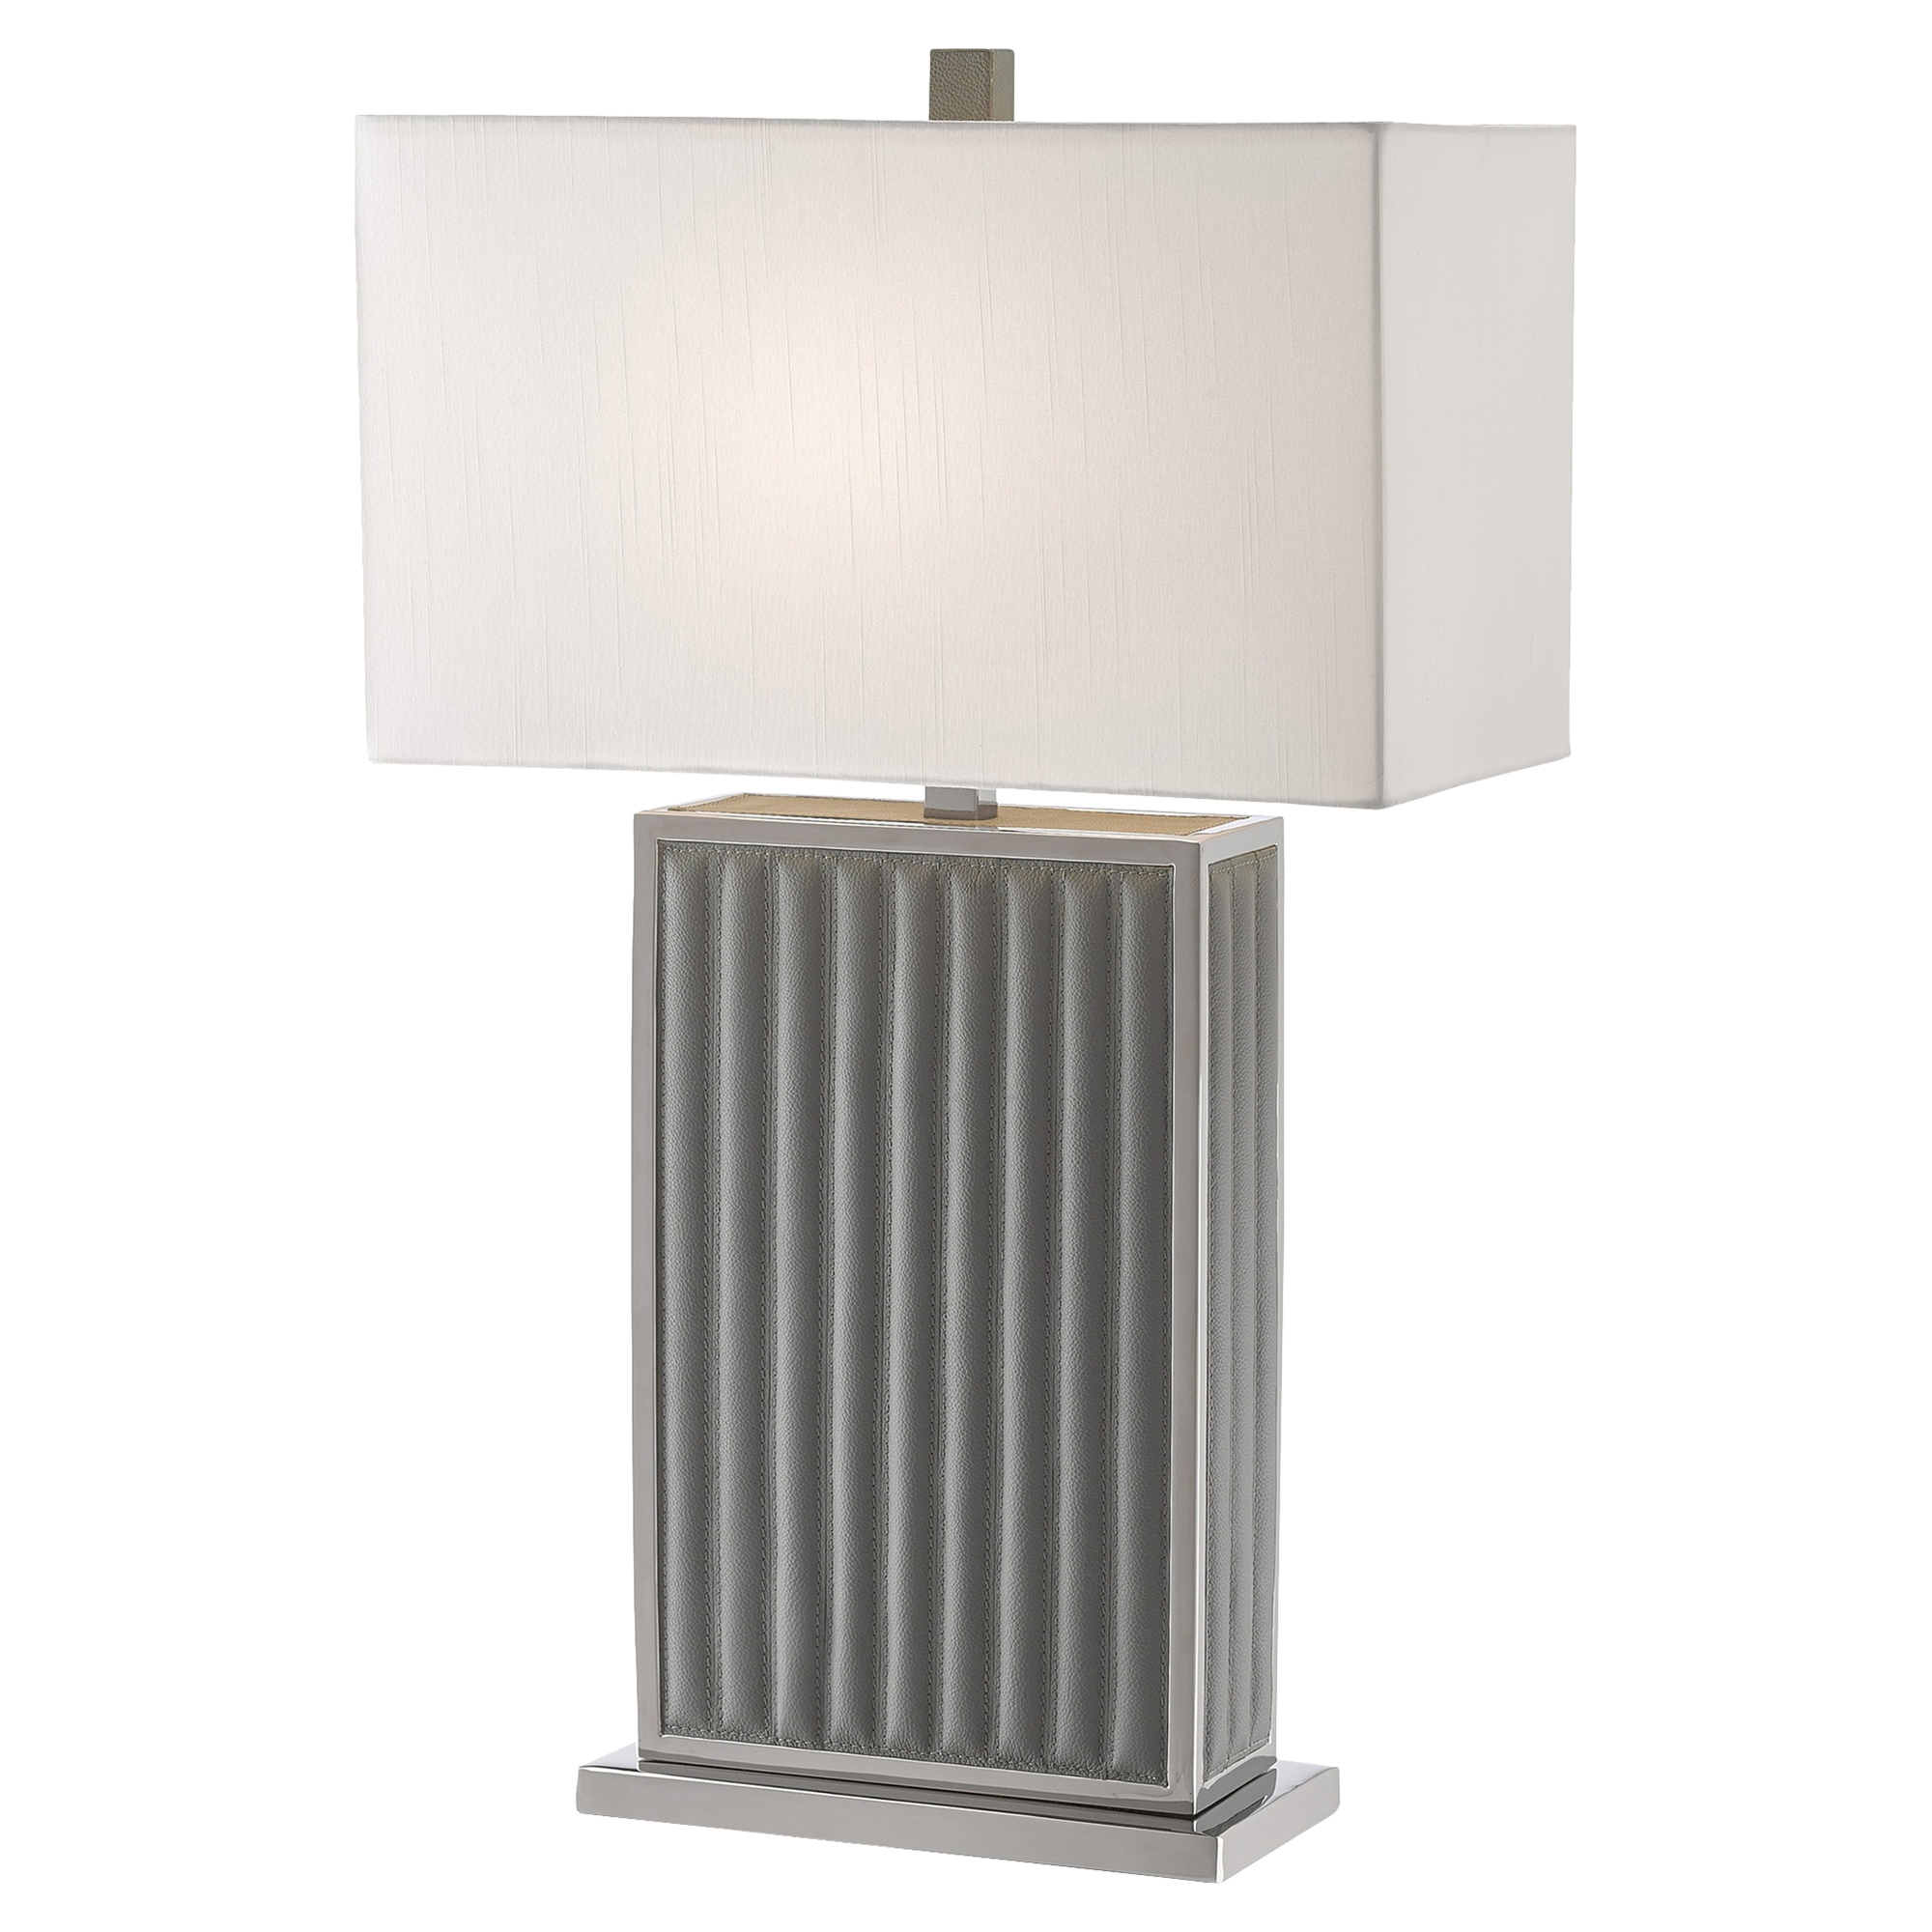 Loft Quilted Leather Grey Column Table Lamp